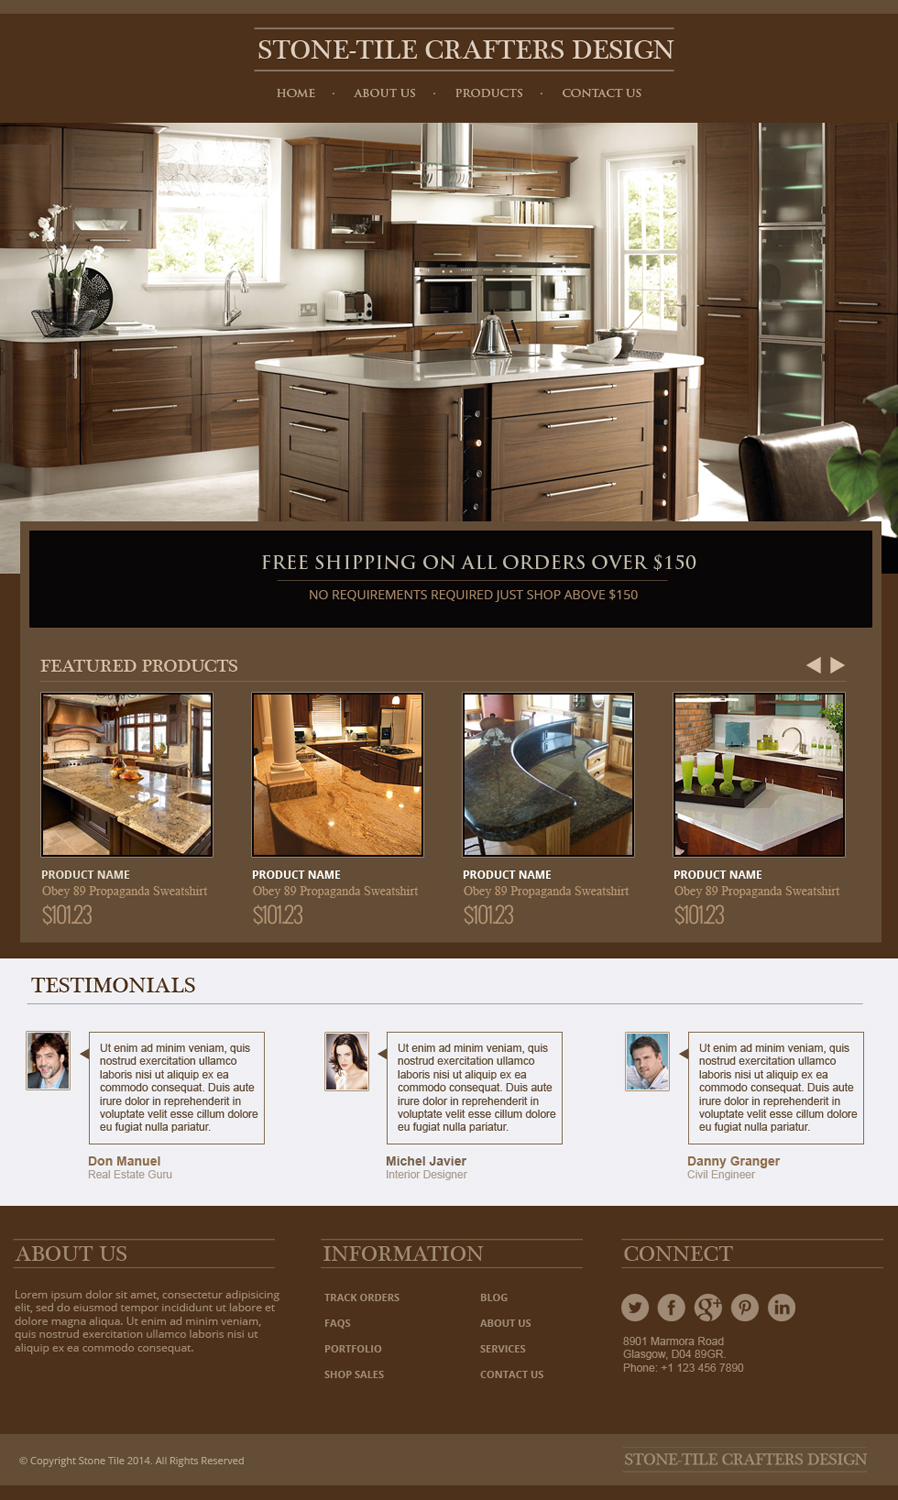 Tile web design for stone tile crafters by jeckx2 design for Web design tile layout